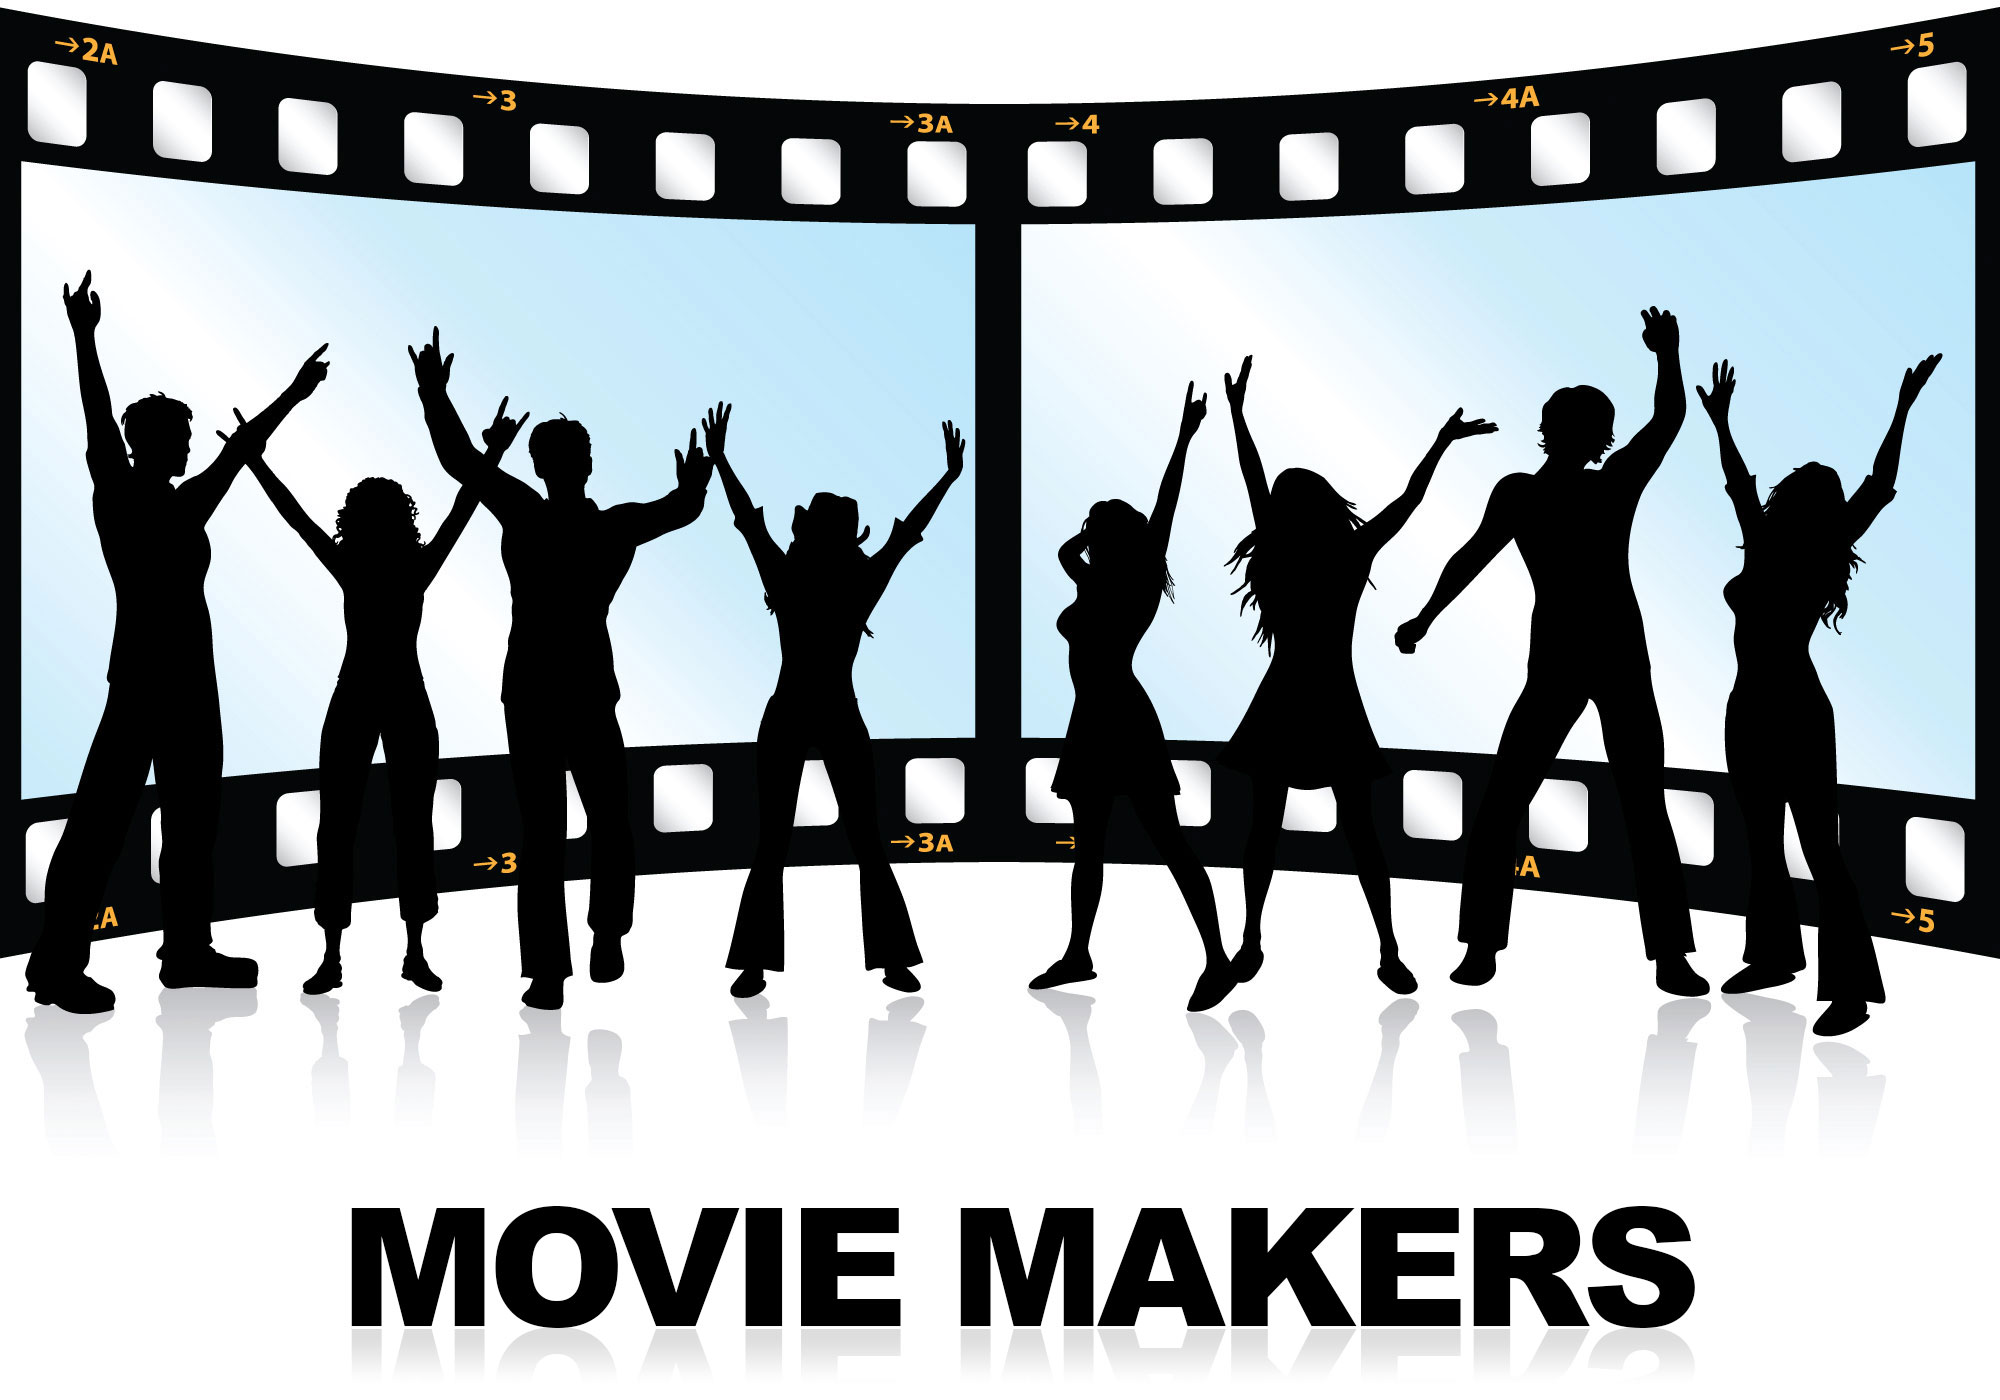 Movie maker techniques